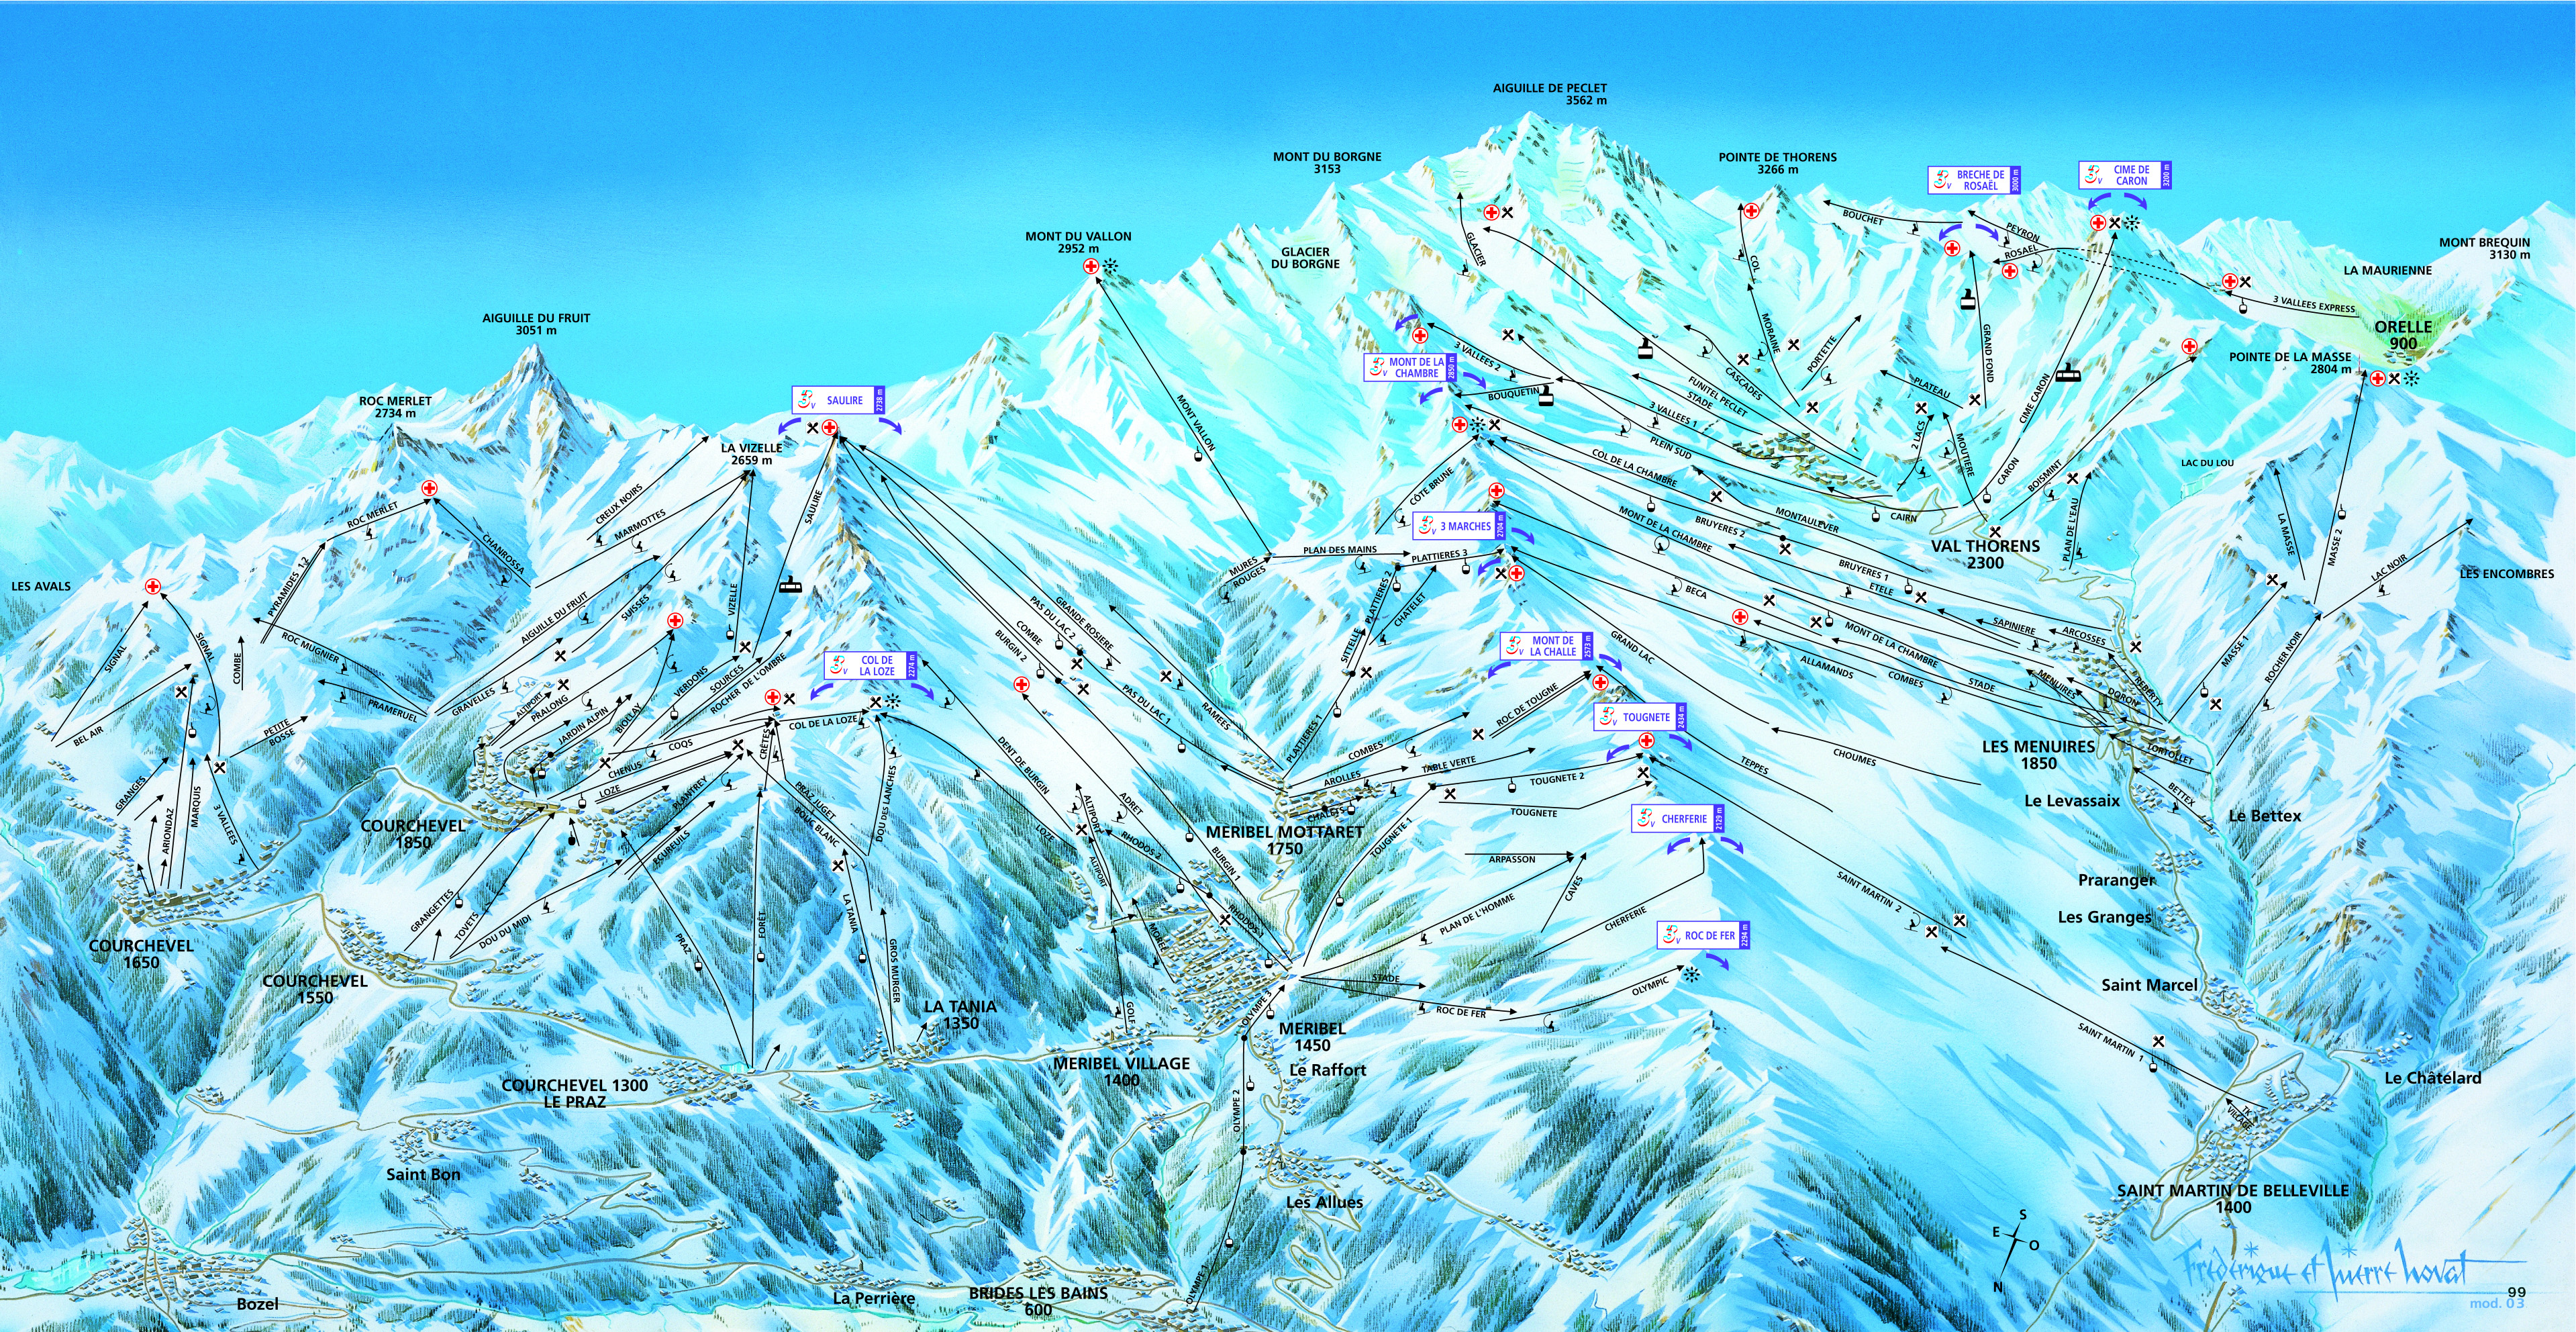 Meribel Ski Map Meribel Piste Maps and Ski Resort Map | PowderBeds Meribel Ski Map